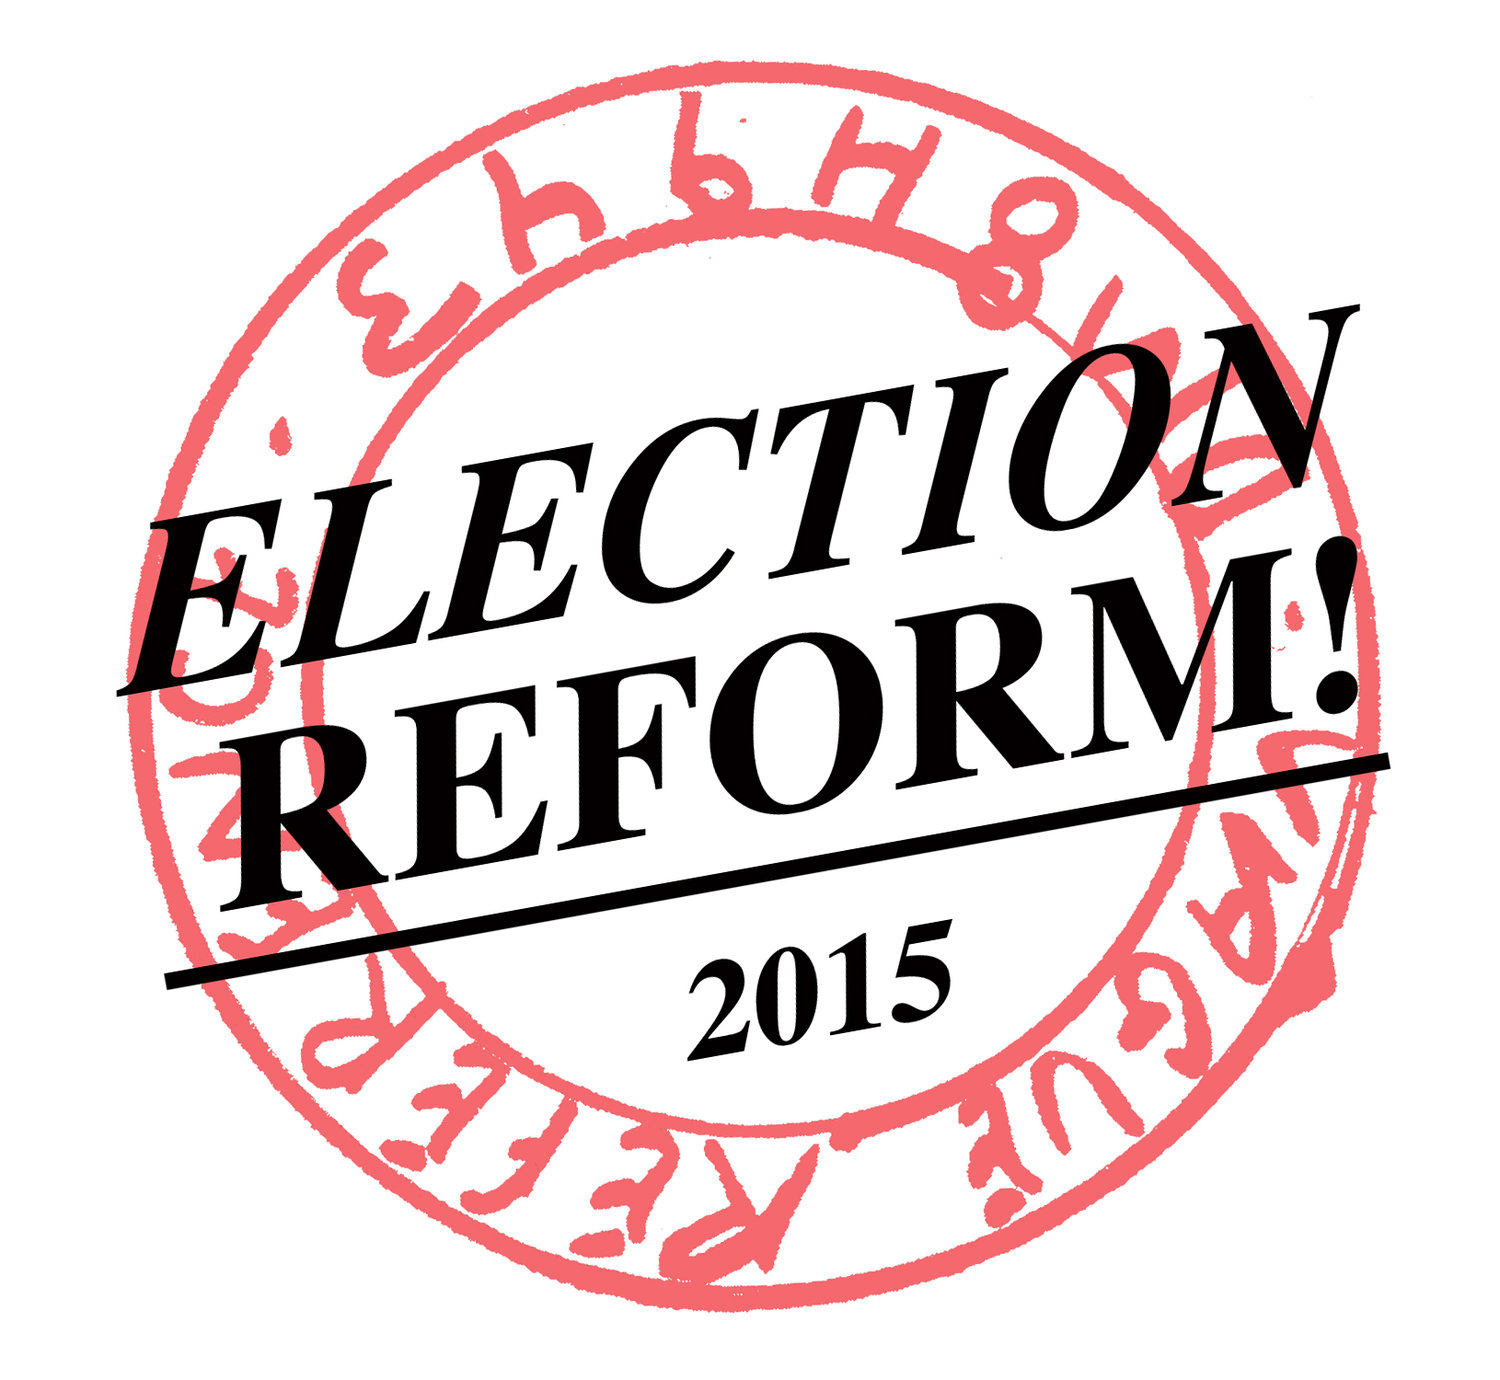 ELECTION REFORM!